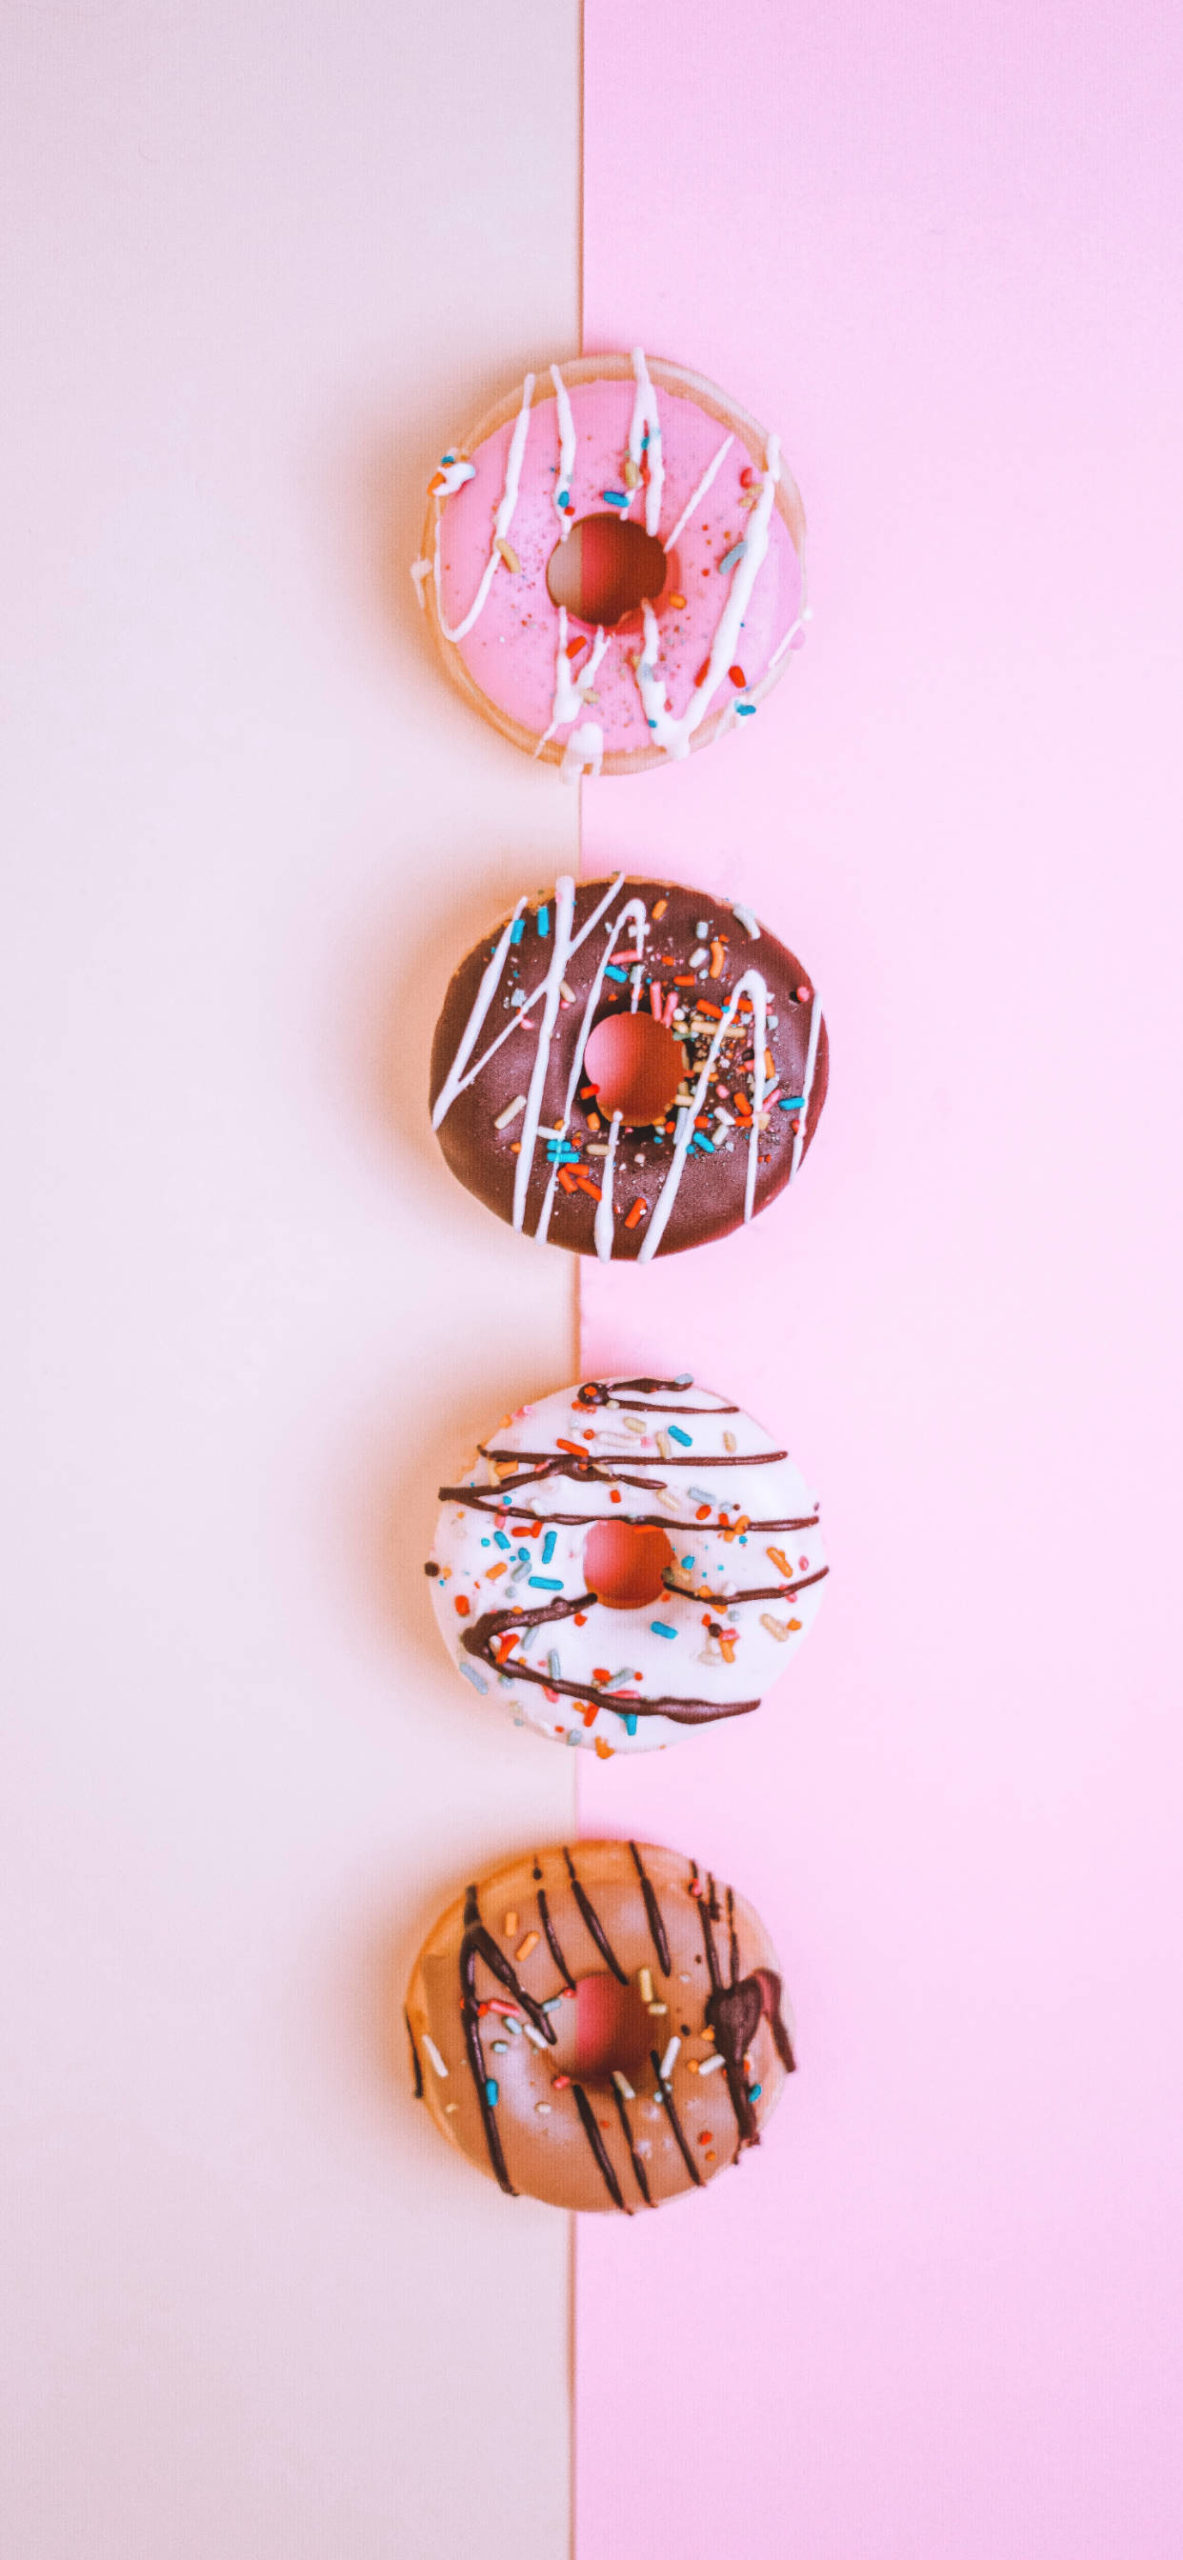 iPhone wallpapers donut pink choco white brown scaled Donut